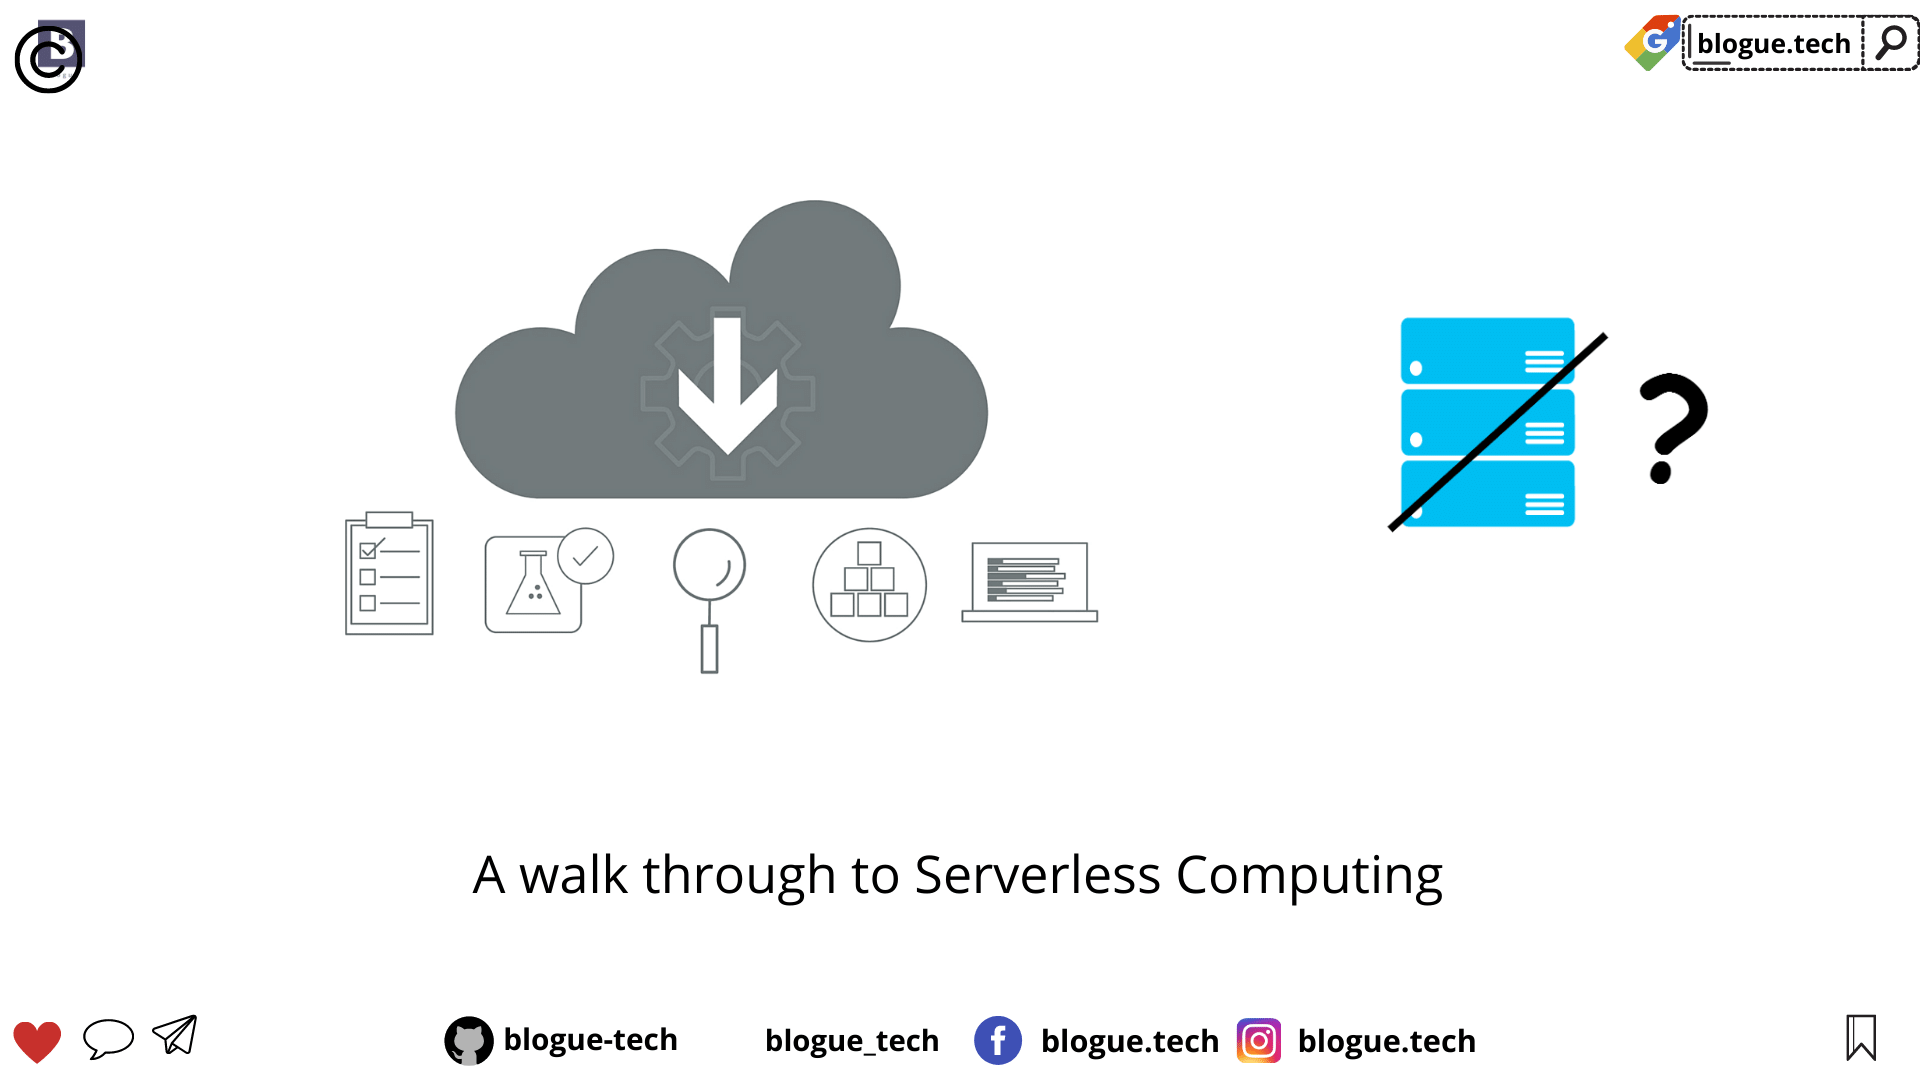 A walk through to Serverless Computing